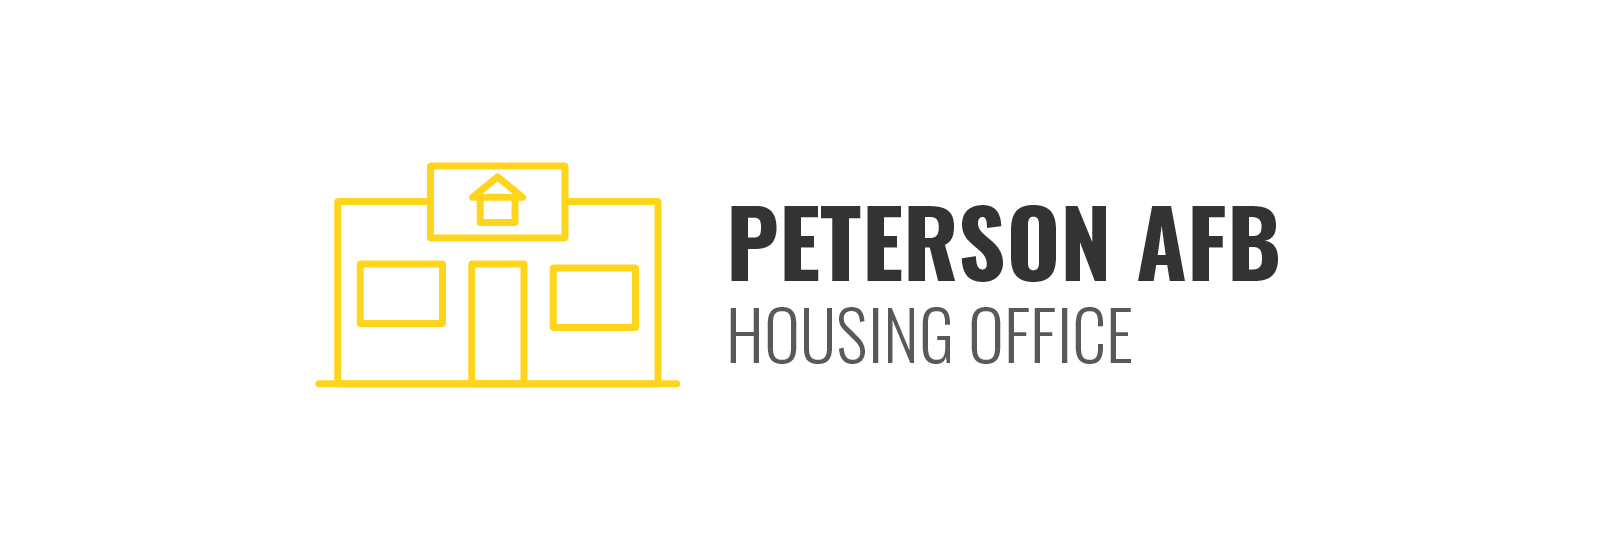 Peterson AFB Housing Office